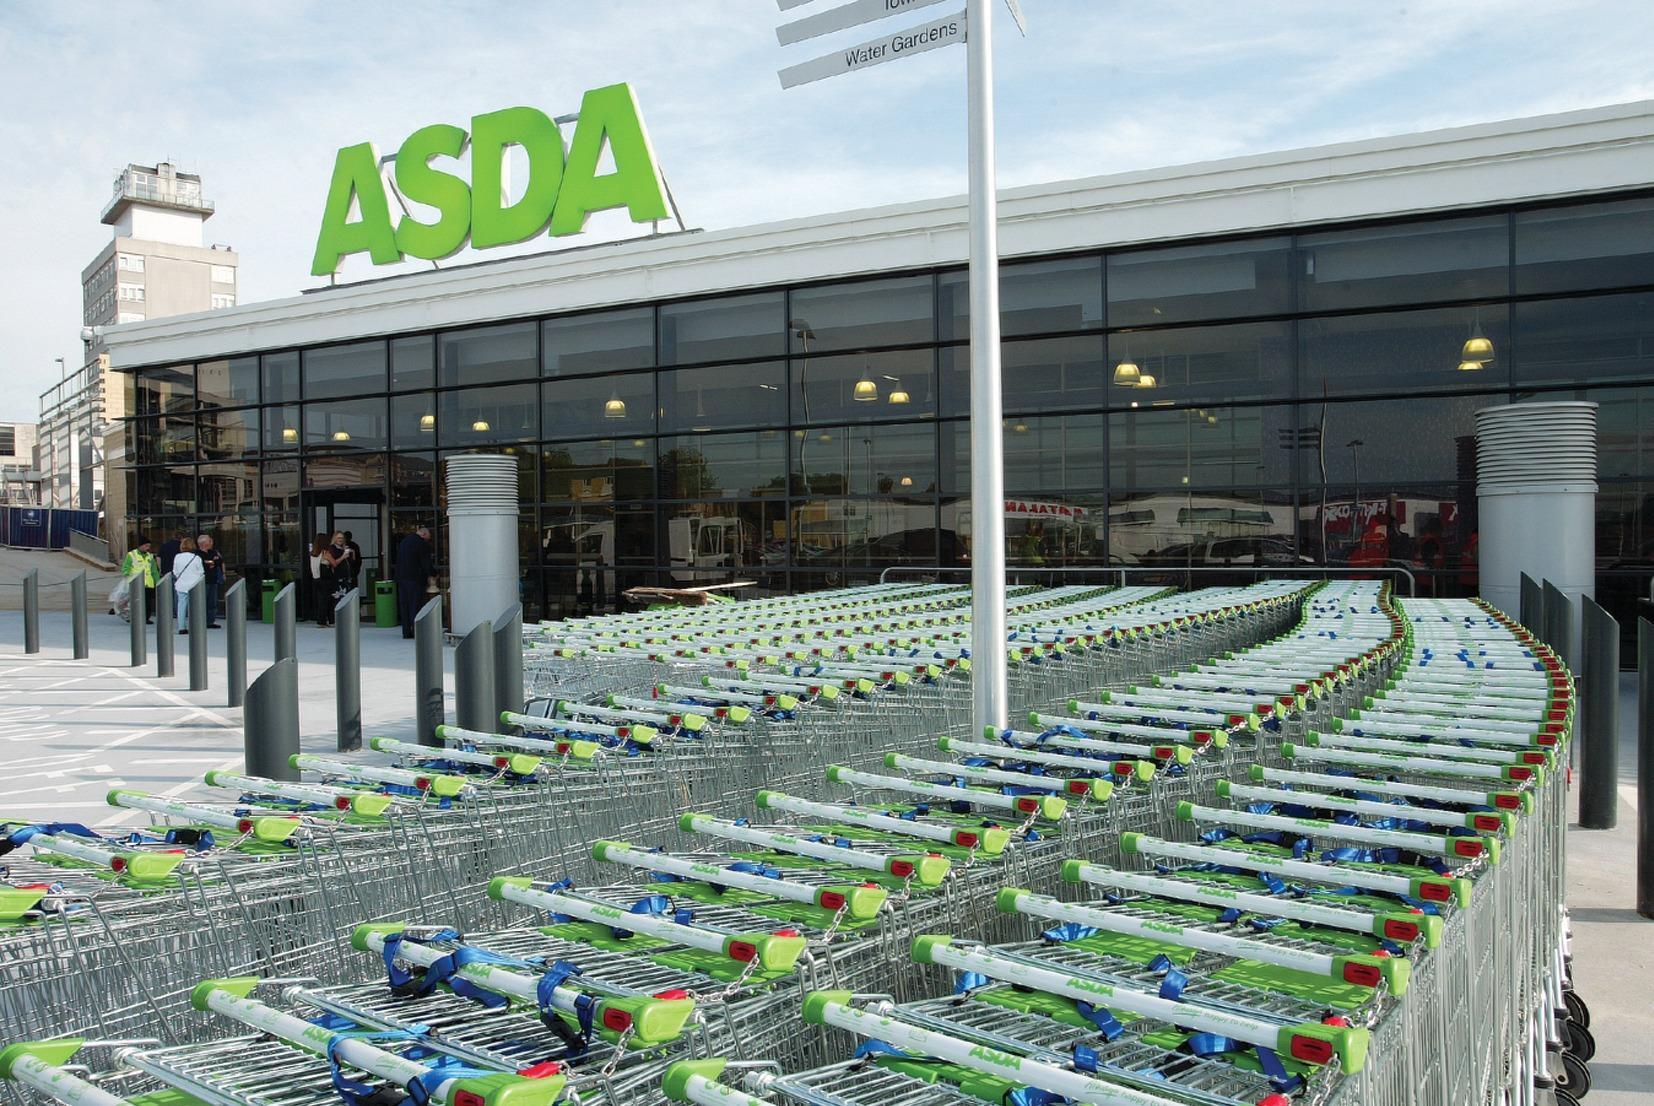 asda analysis The proposed merger between sainsbury's and asda creates scale enabling  them to better withstand the current strong headwinds together.